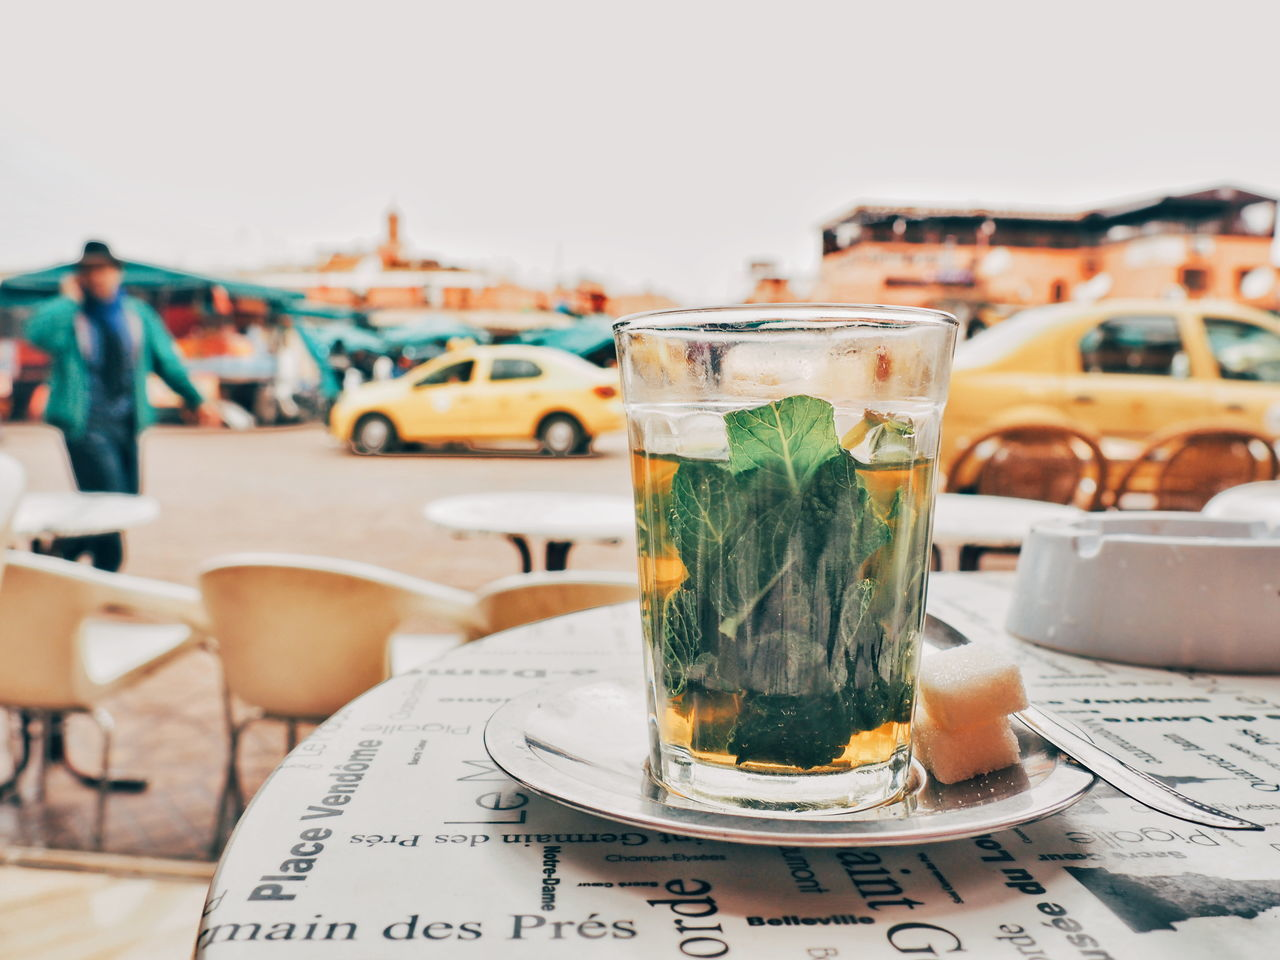 Busy Street Cafe Calmness Day Drink Drinking Glass Food And Drink Freshness Marketplace Mint Tea Morocco MoroccoTrip No People Peaceful View Refreshment Tea Tea Time White Background